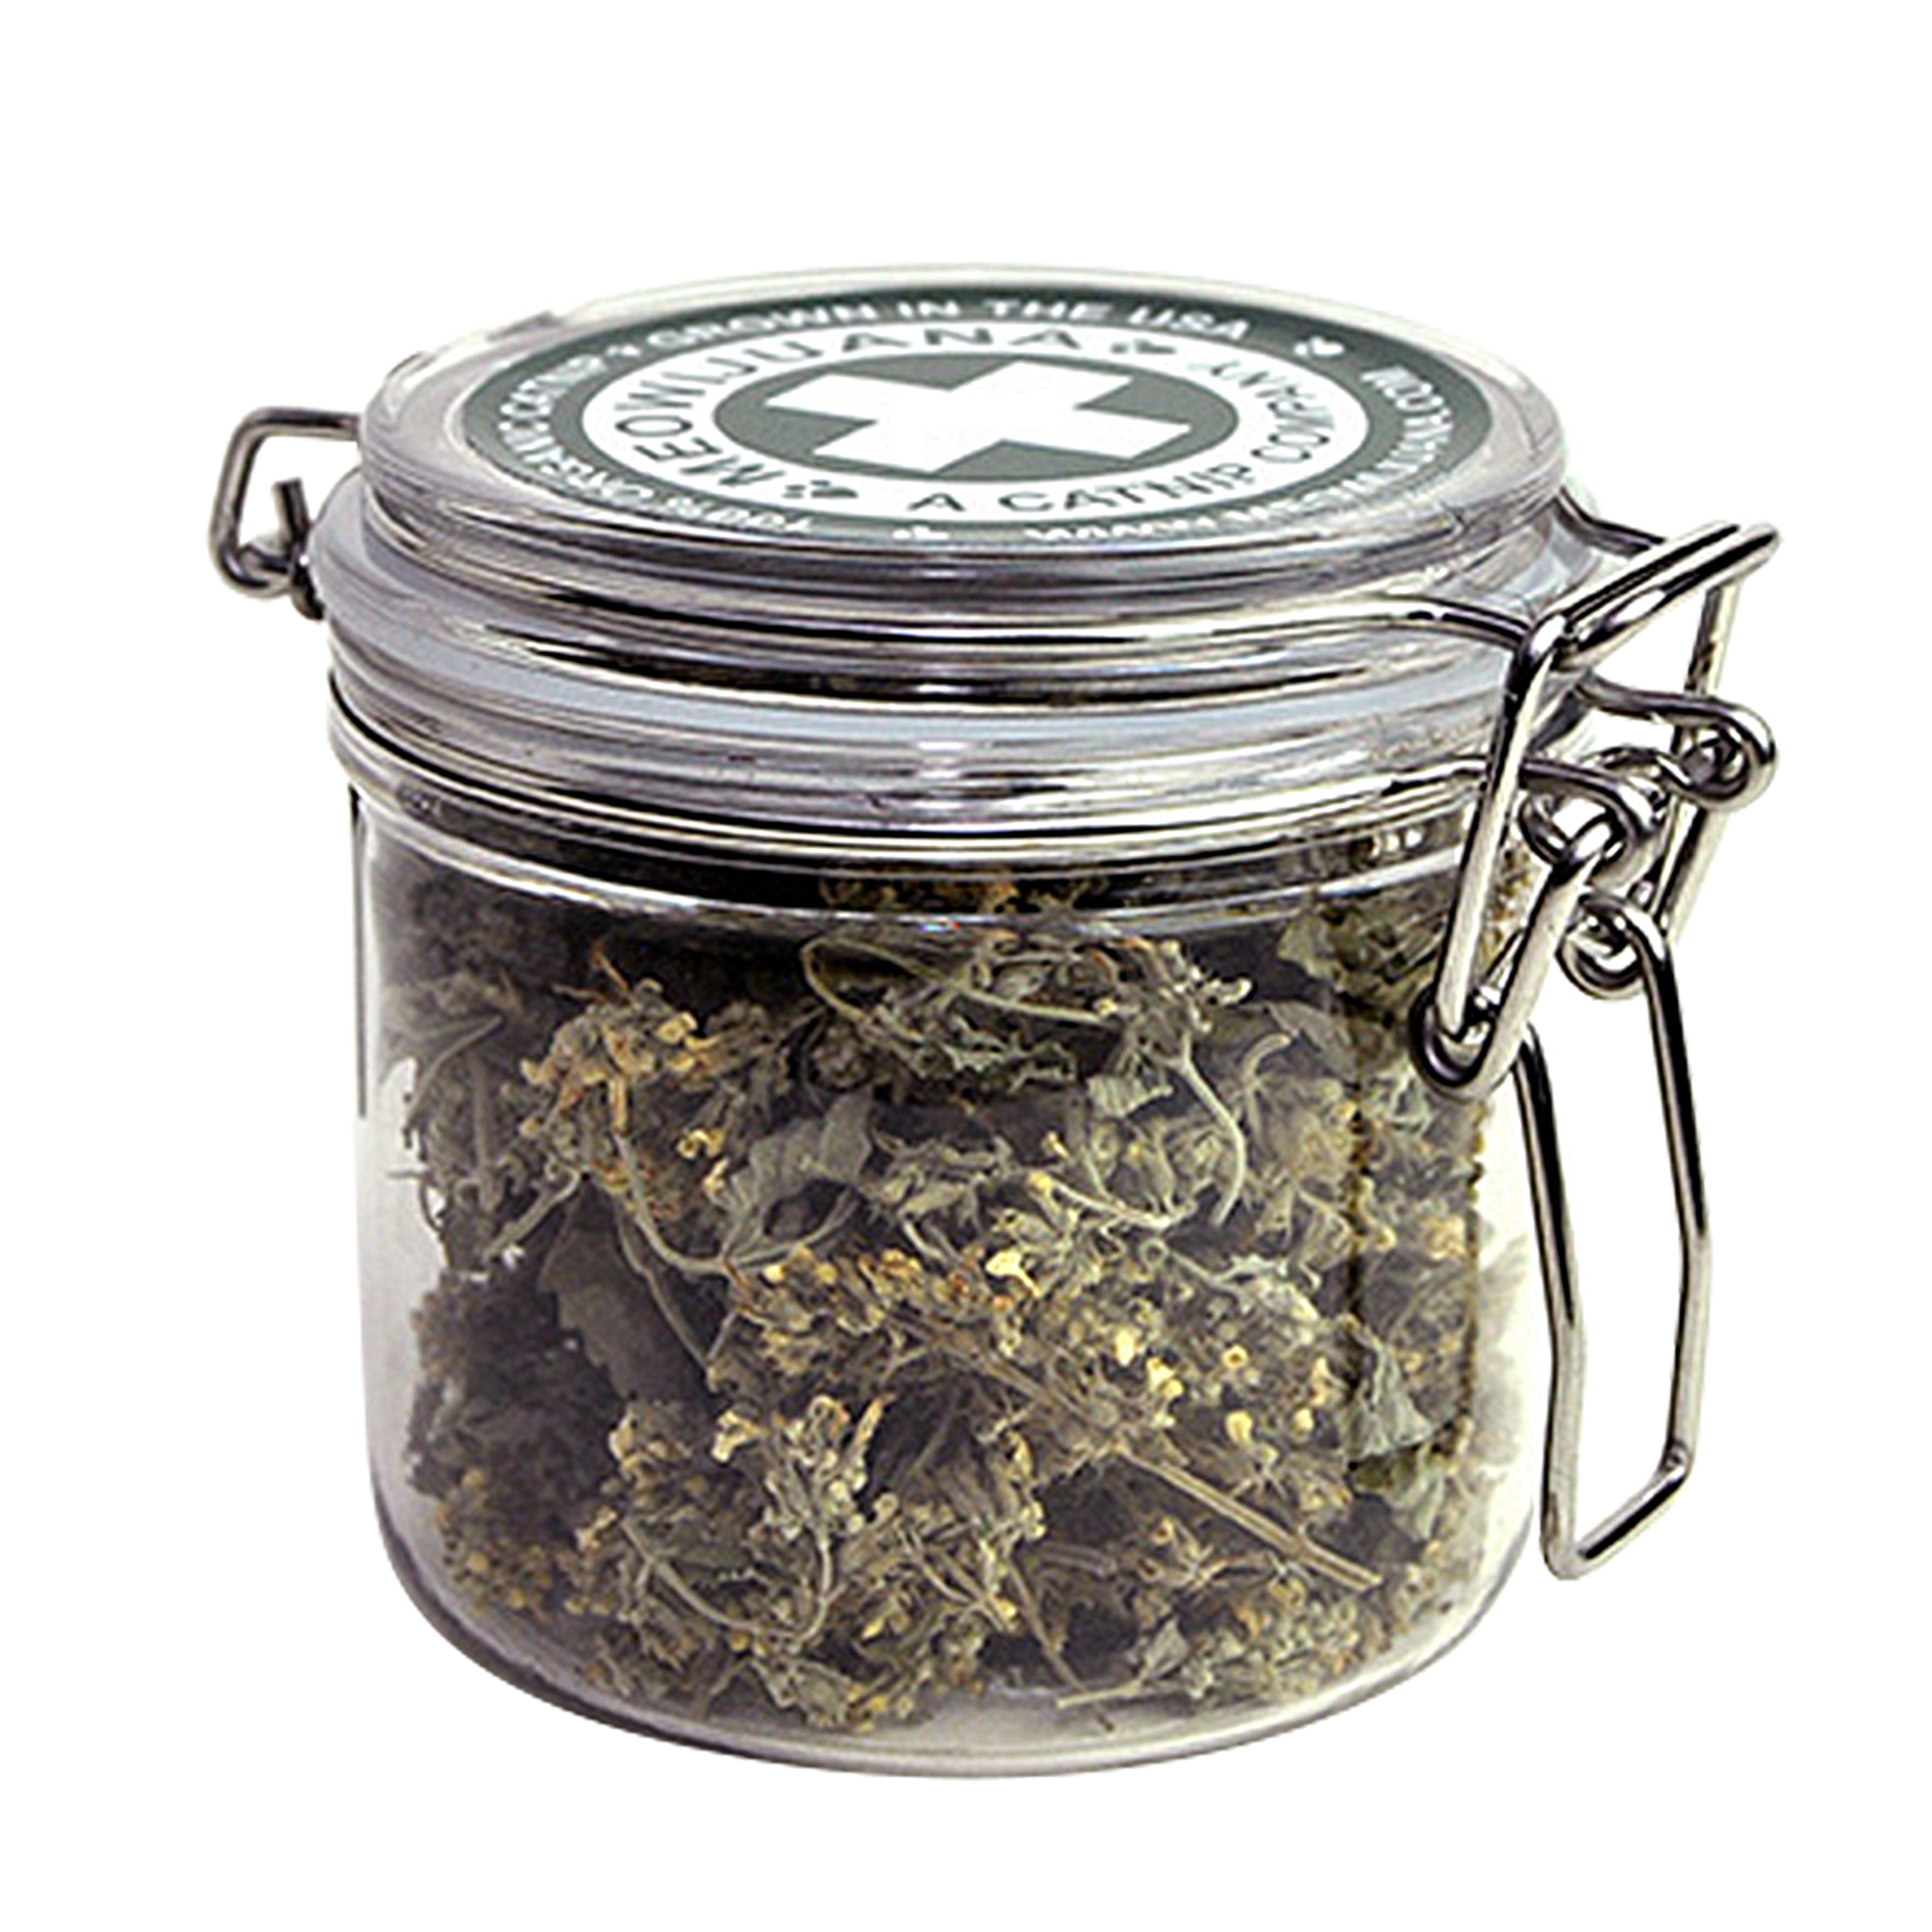 Meowijuana Purrple Passion Premium Catnip Small Jar of Buds, 15 grams by Meowijuana